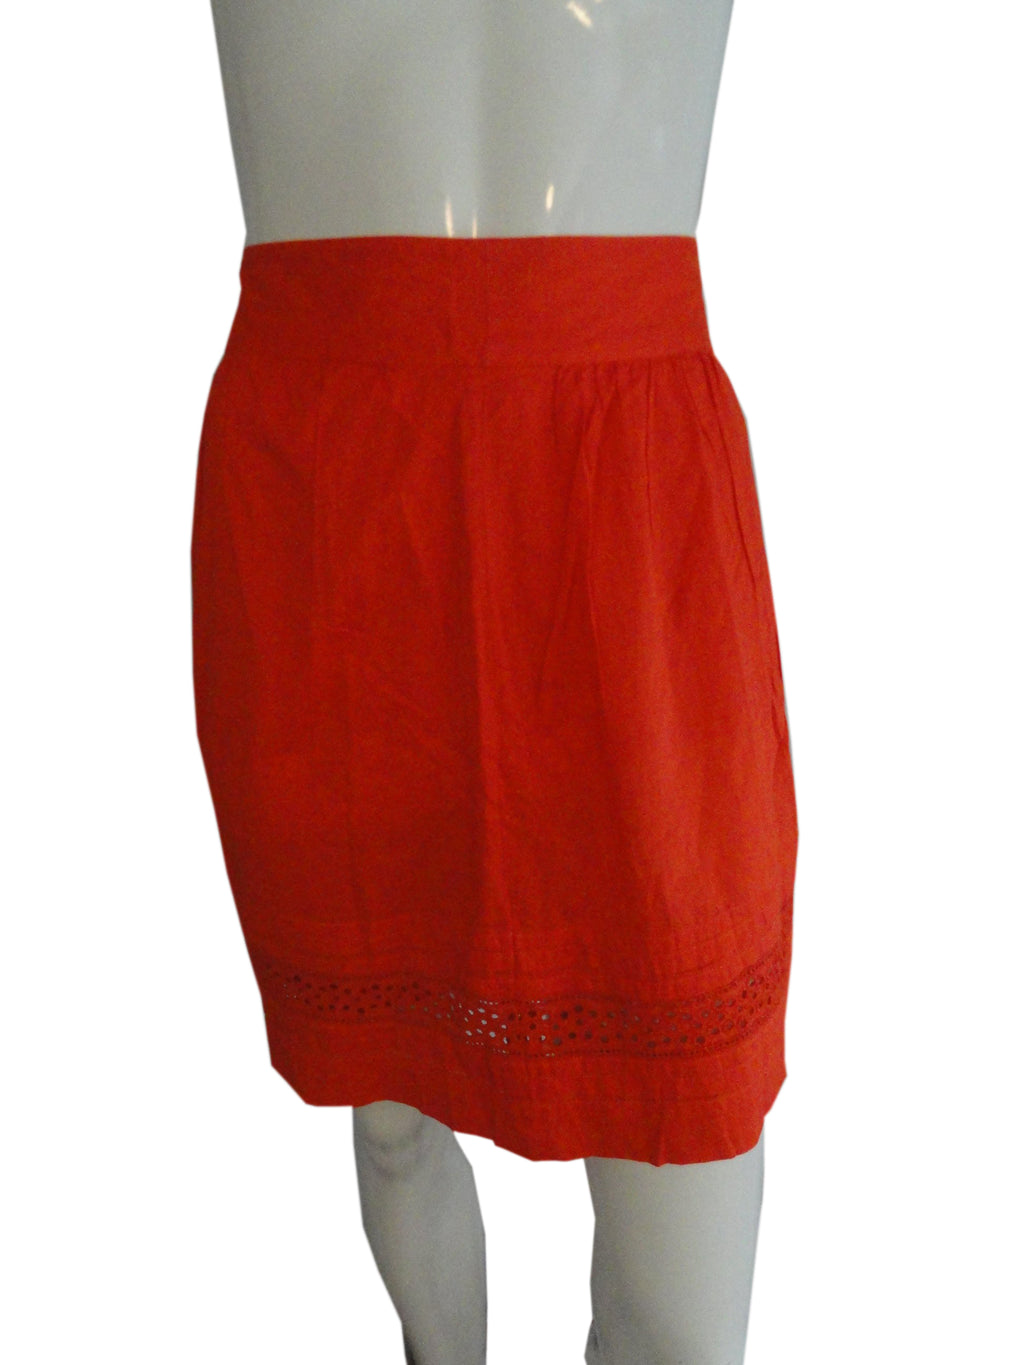 Ann Taylor Loft Orange Skirt Size  SKU 000233